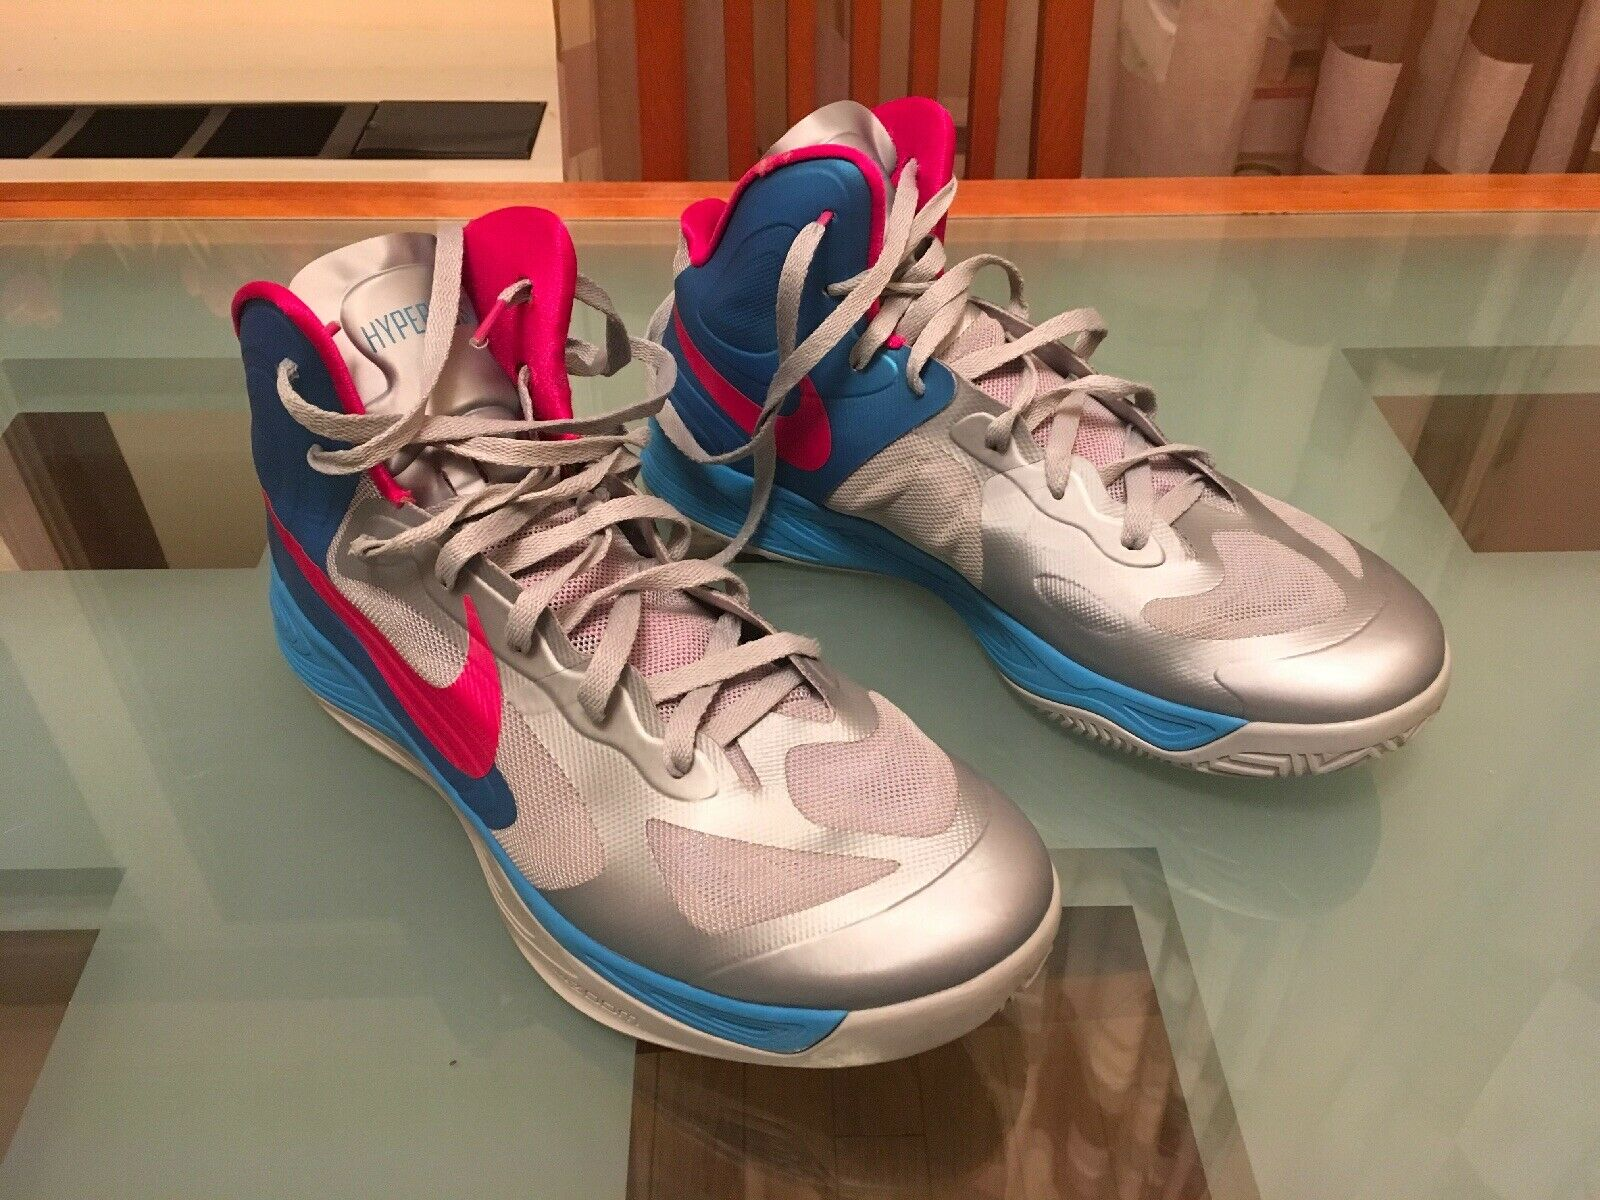 Nike Zoom Hyperfuse 2012 Basketball shoes Size 13 US grey   bluee   Pink GREAT